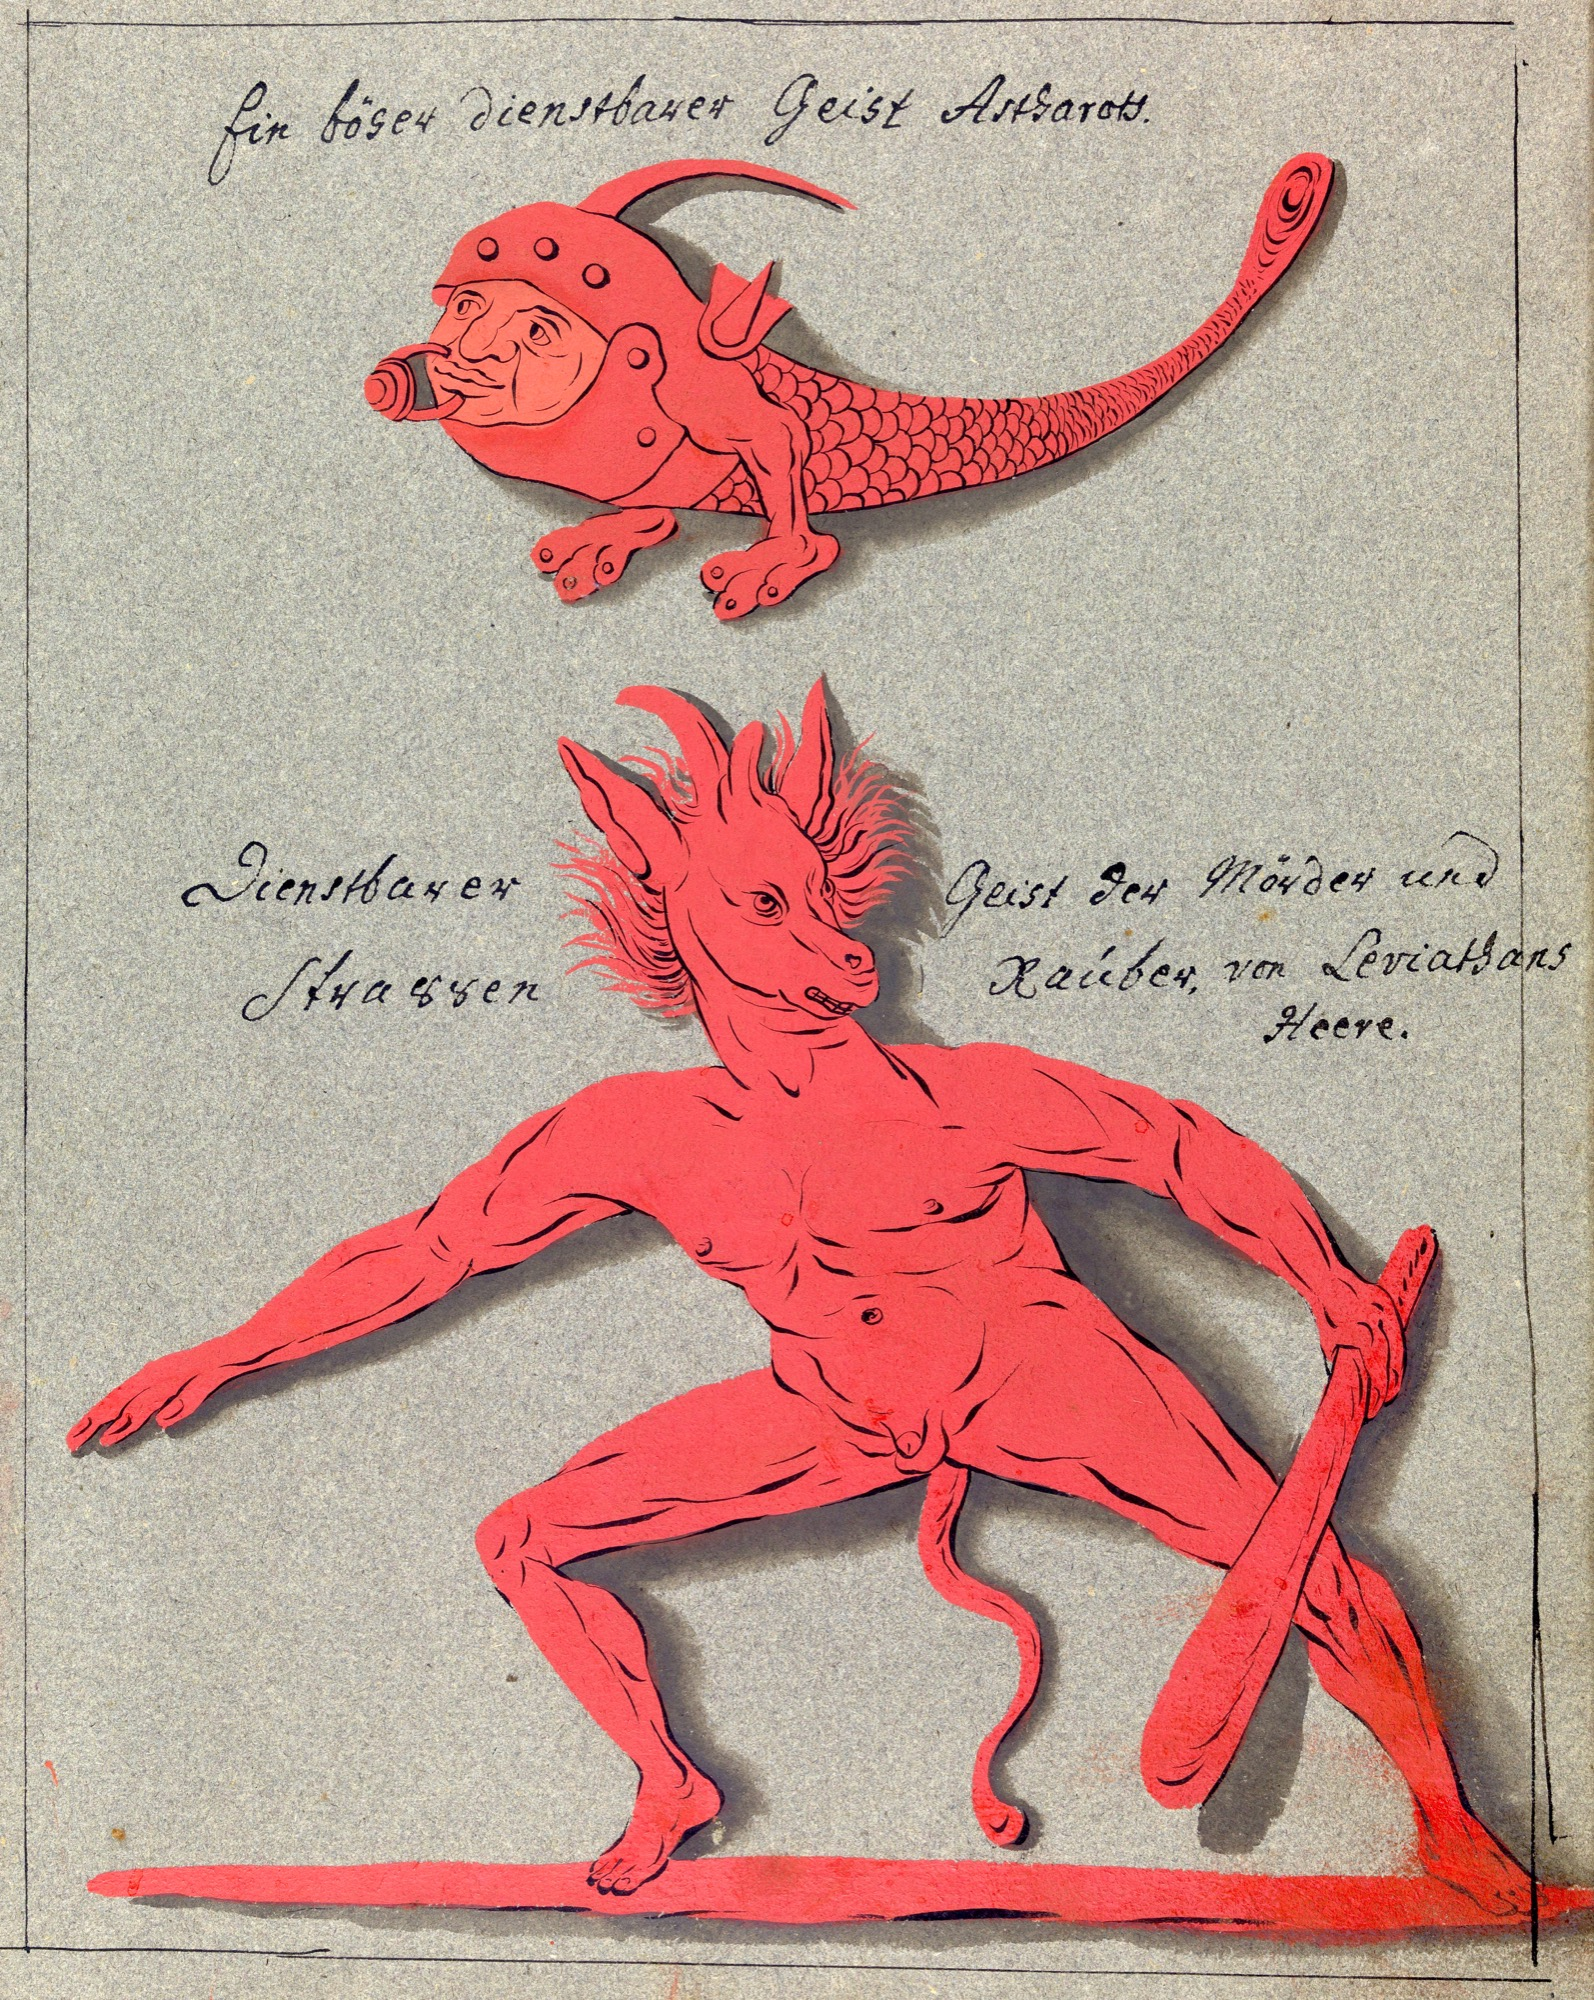 L0076378 A compendium about demons and magic. MS 1766. Credit: Wellcome Library, London. Wellcome Images images@wellcome.ac.uk http://wellcomeimages.org Compendium rarissimum totius Artis Magicae sistematisatae per celeberrimos Artis hujus Magistros. Anno 1057. Noli me tangere. Watercolour c. 1775 Published:  -  Copyrighted work available under Creative Commons Attribution only licence CC BY 4.0 http://creativecommons.org/licenses/by/4.0/